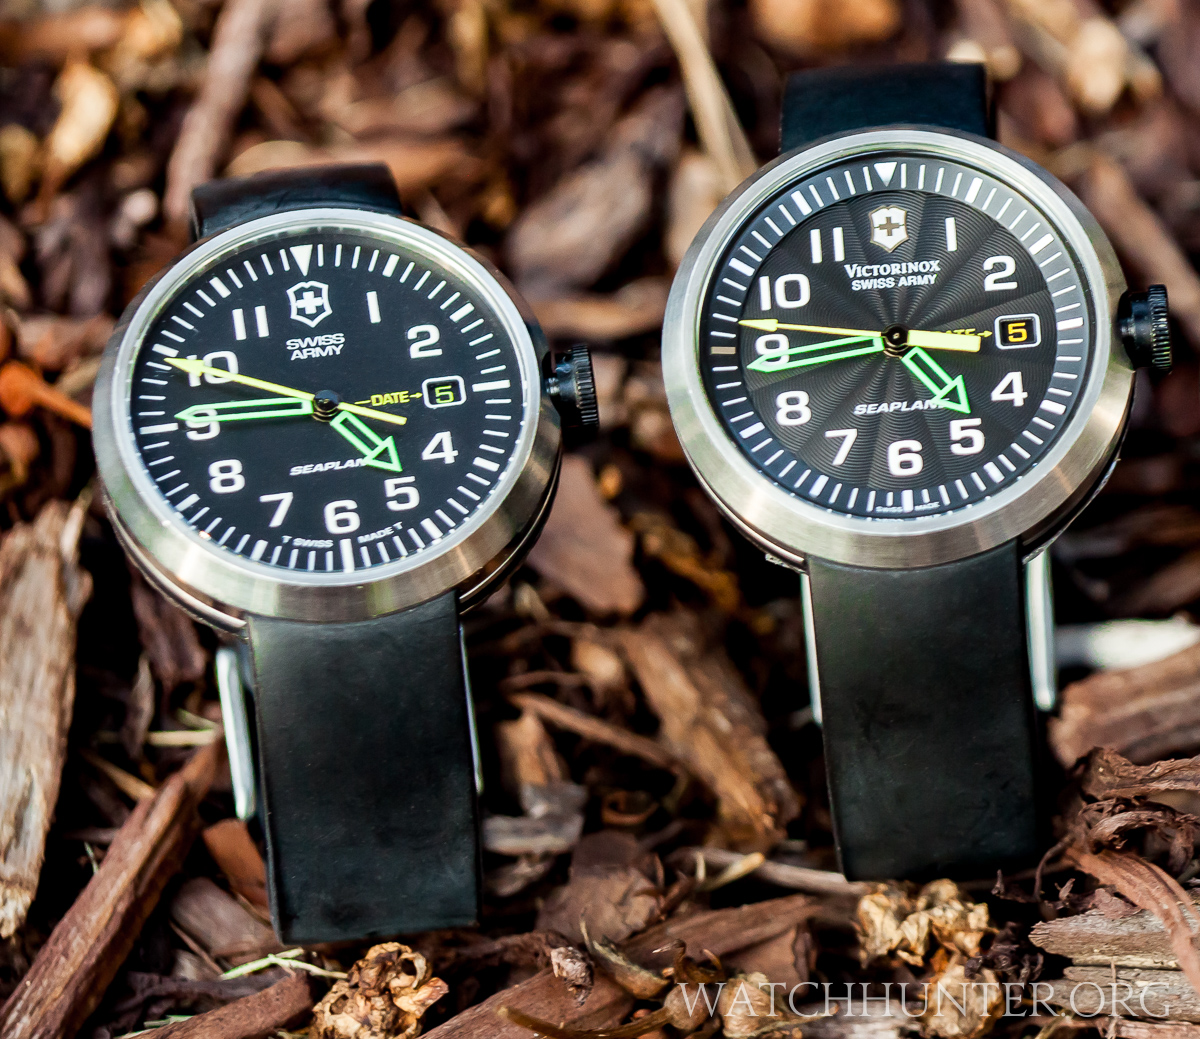 Can you spot the differences in these two quartz SeaPlane watches?